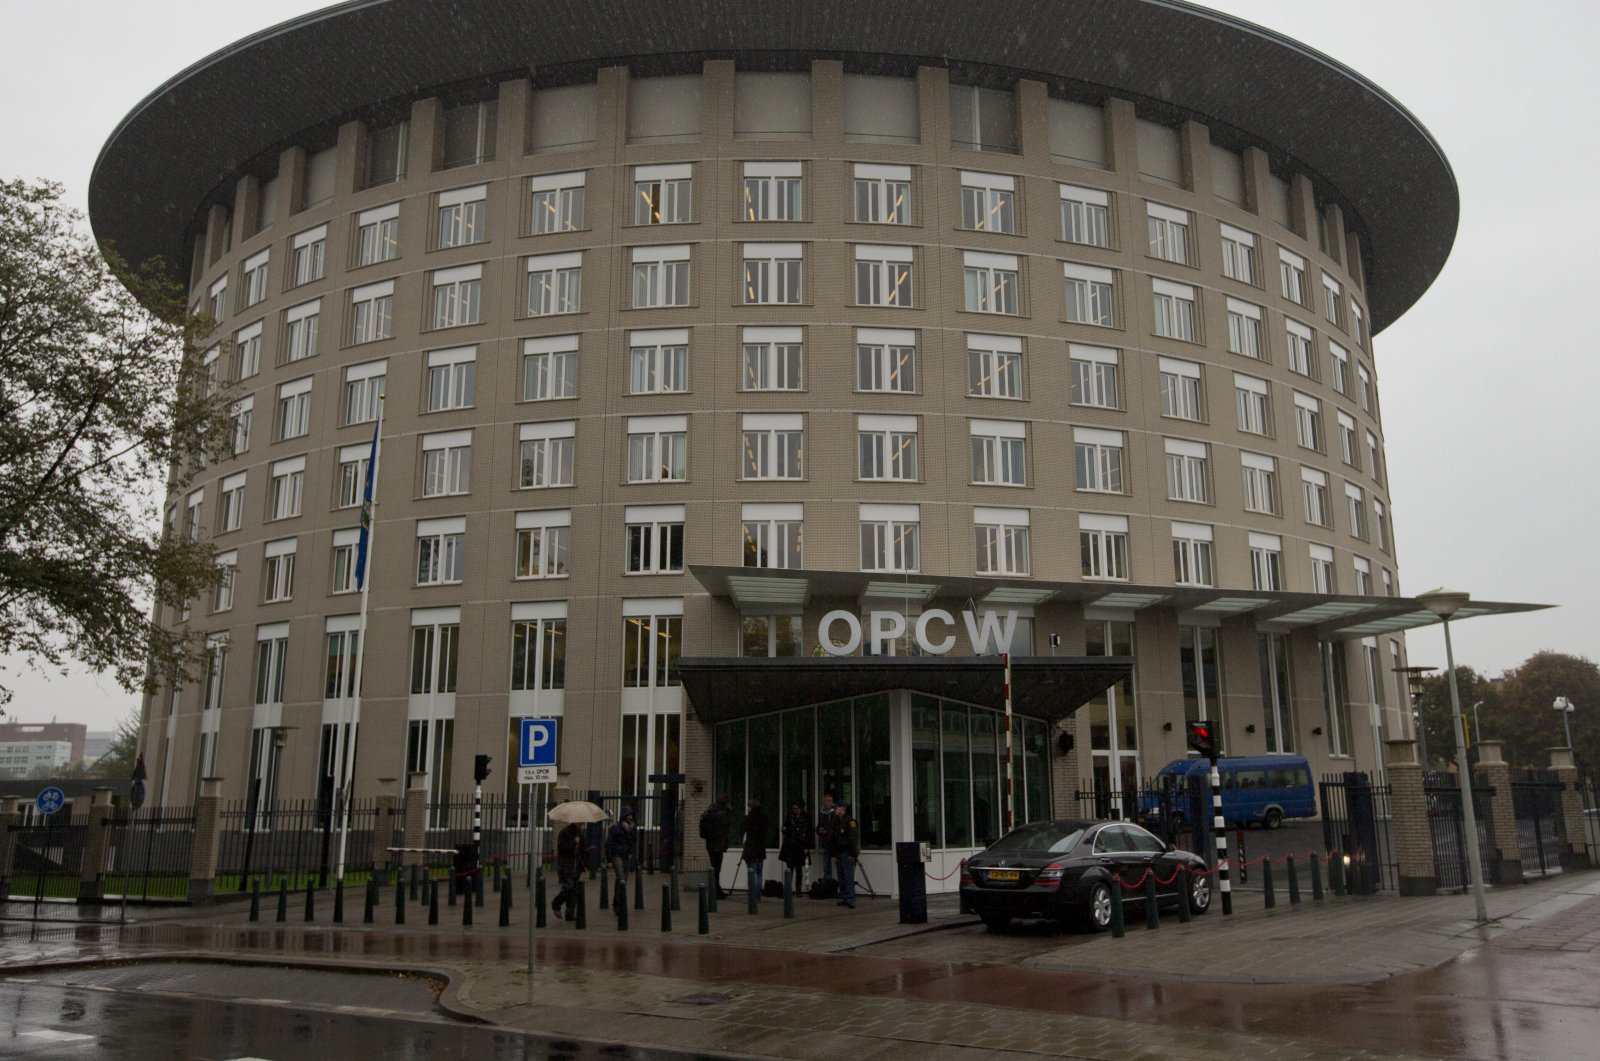 An exterior view of the headquarters of the world's chemical watchdog OPCW, in The Hague, Netherlands, Oct. 11, 2013. (AP Photo)